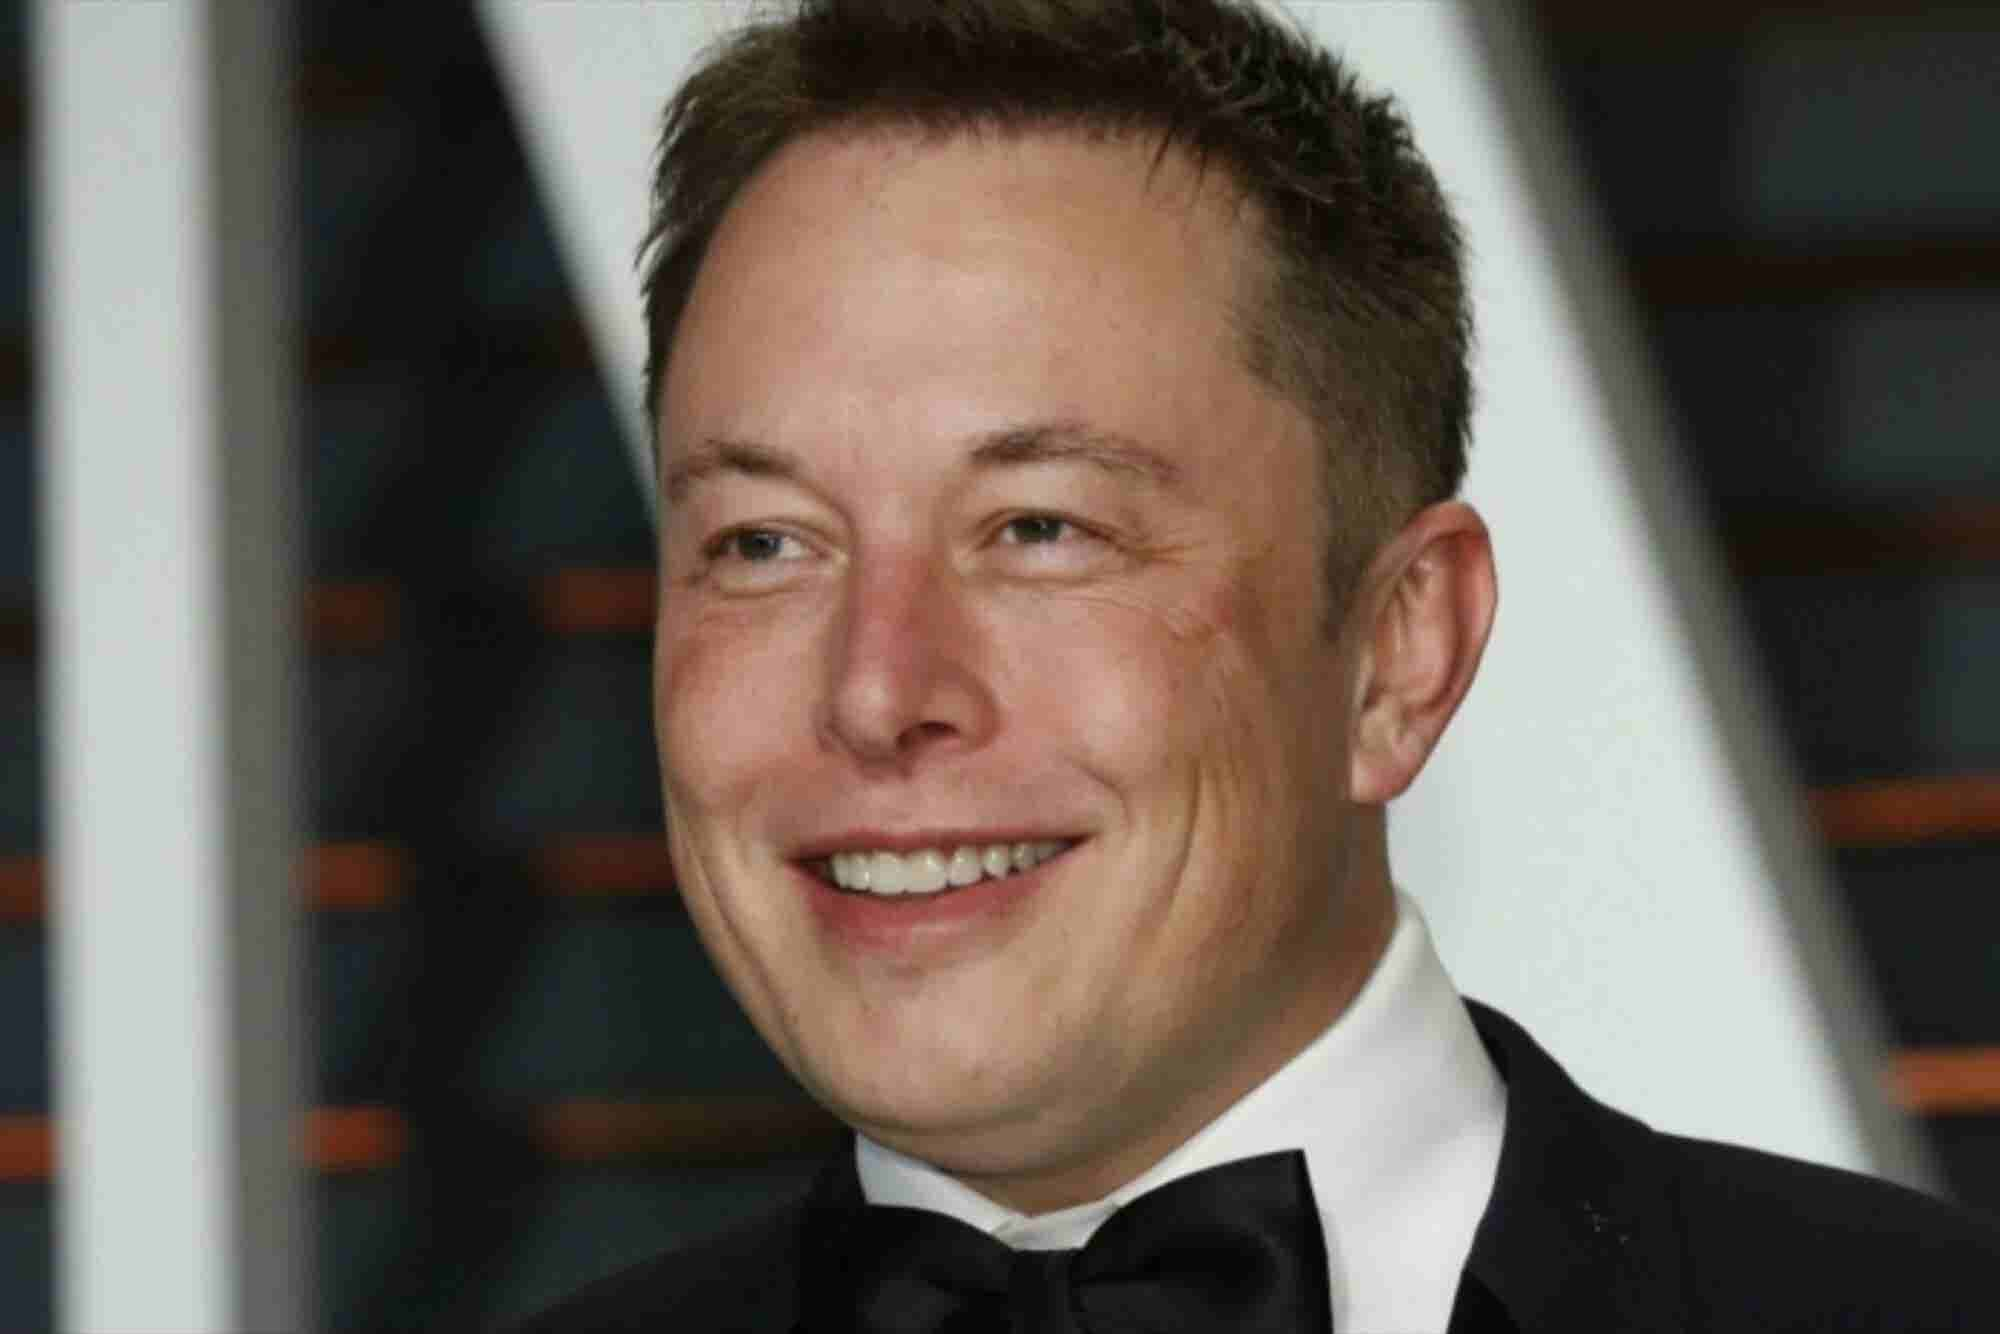 Infographic: Elon Musk - Profile Of A Prolific Entrepreneur